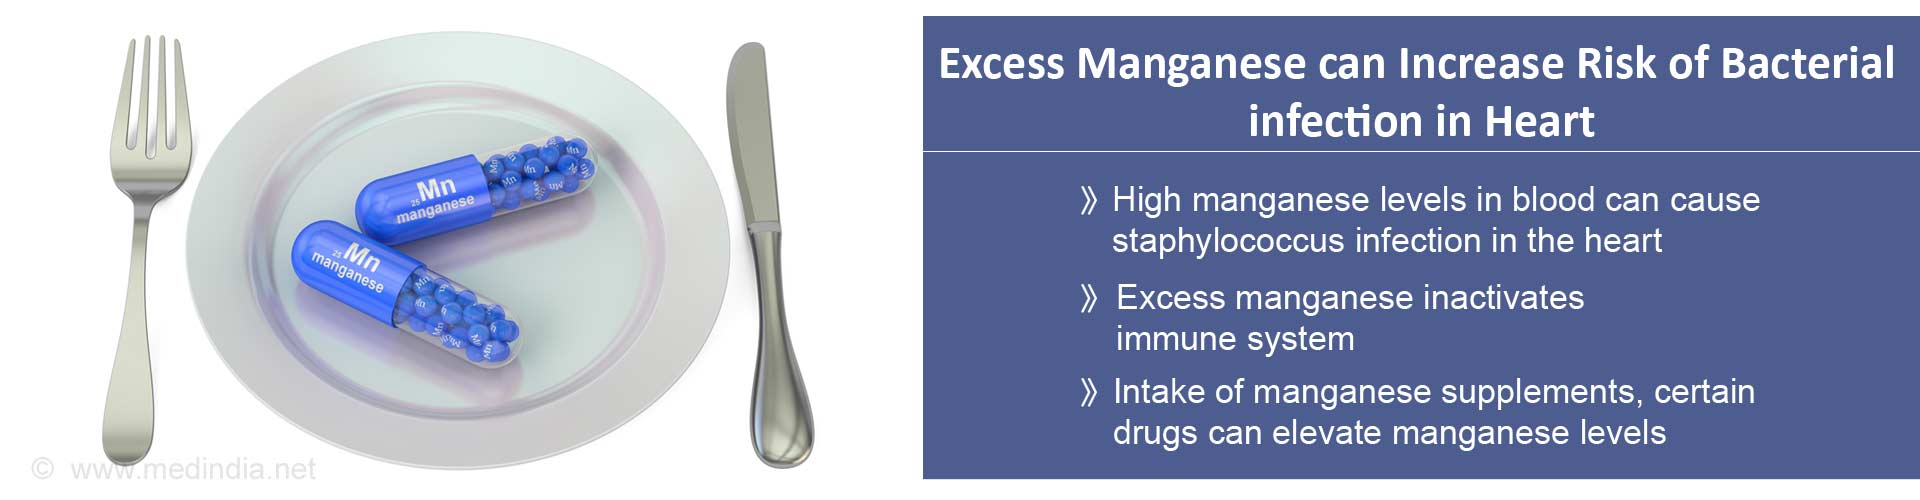 Excess manganese can increase risk of bacterial infection in heart - High manganese levels in blood can cause Staphylococcus aureus infection in the heart - Excess manganese inactivates immune system - Intake of manganese supplements, certain drugs can elevate manganese levels